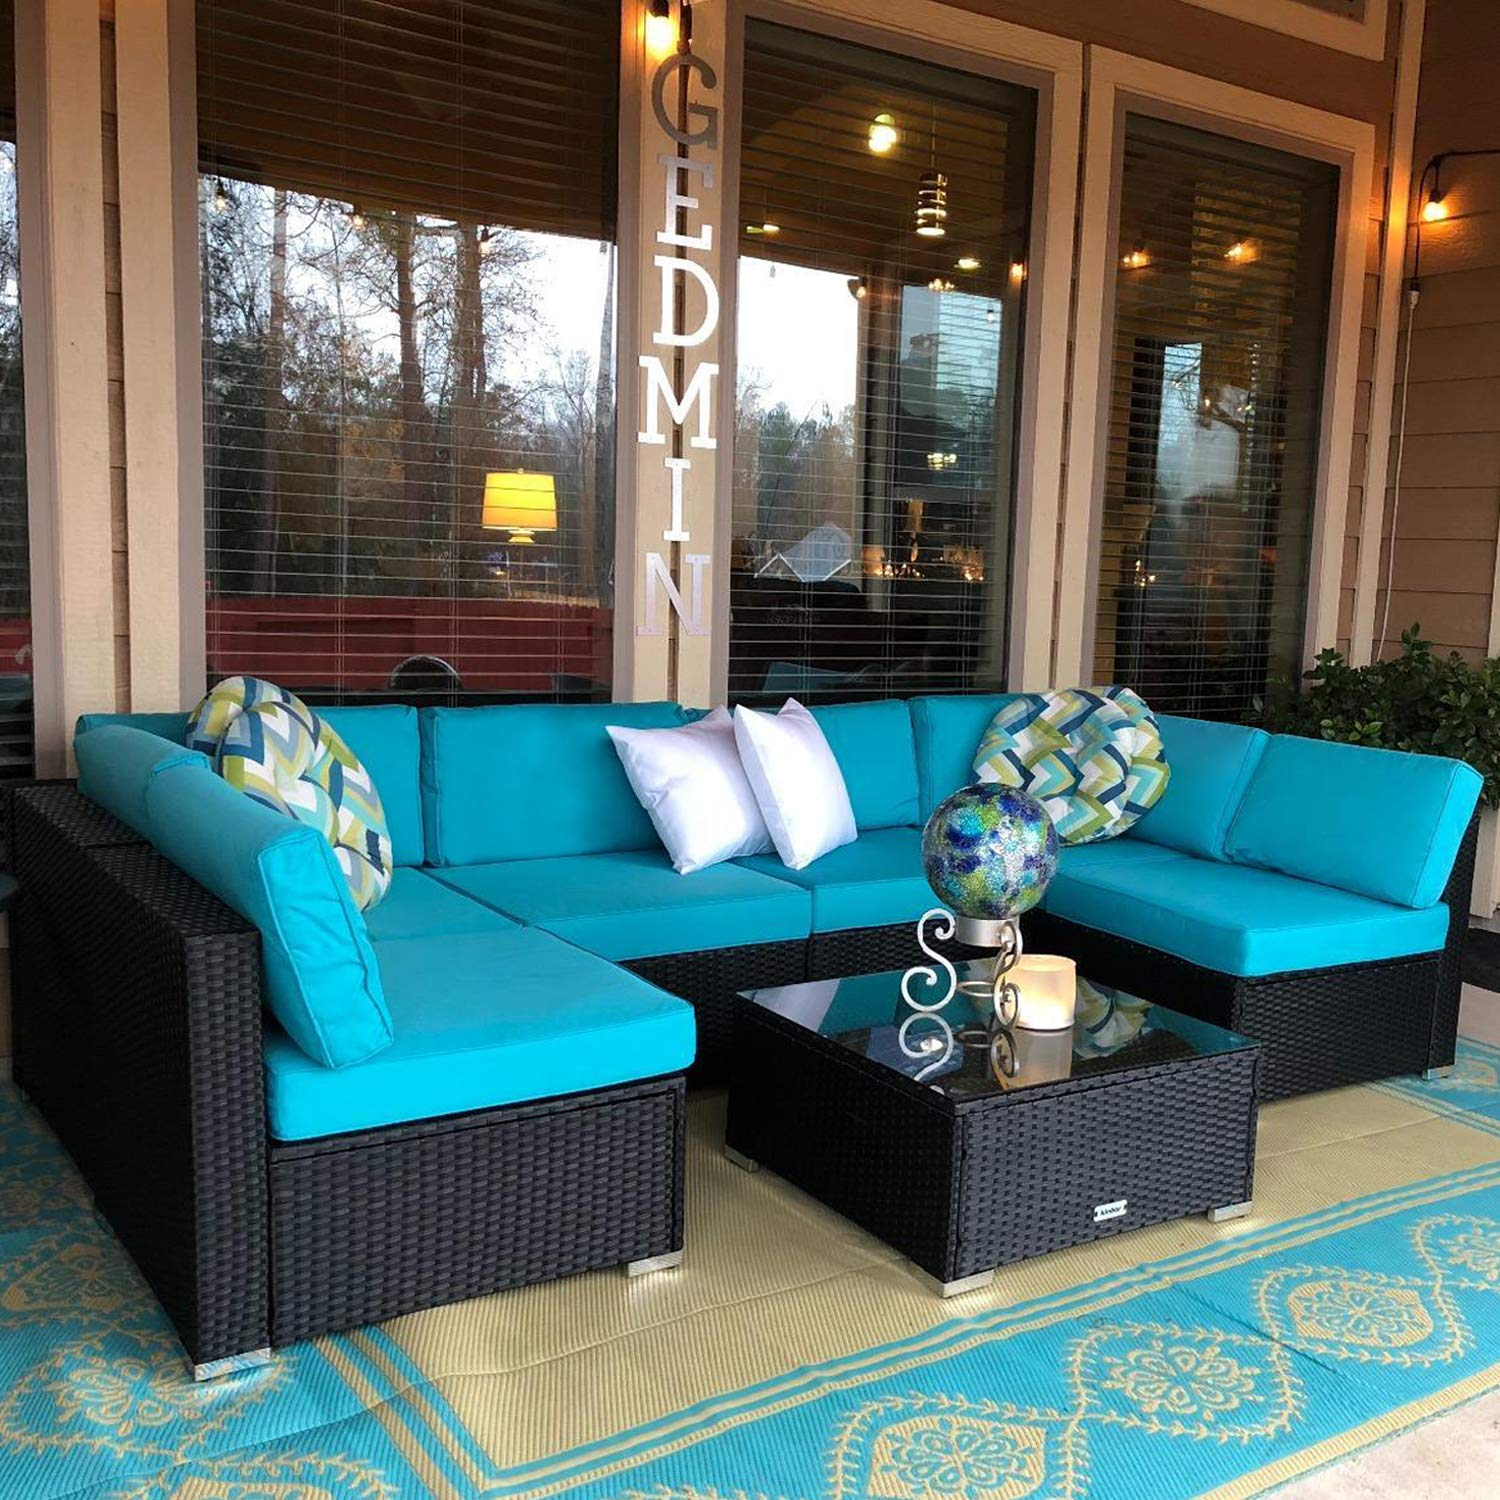 Peach Tree 7 PCs Outdoor Patio PE Rattan Wicker Sofa Sectional Furniture Set with 2 Pillows and Tea Table by Peachtree Press Inc